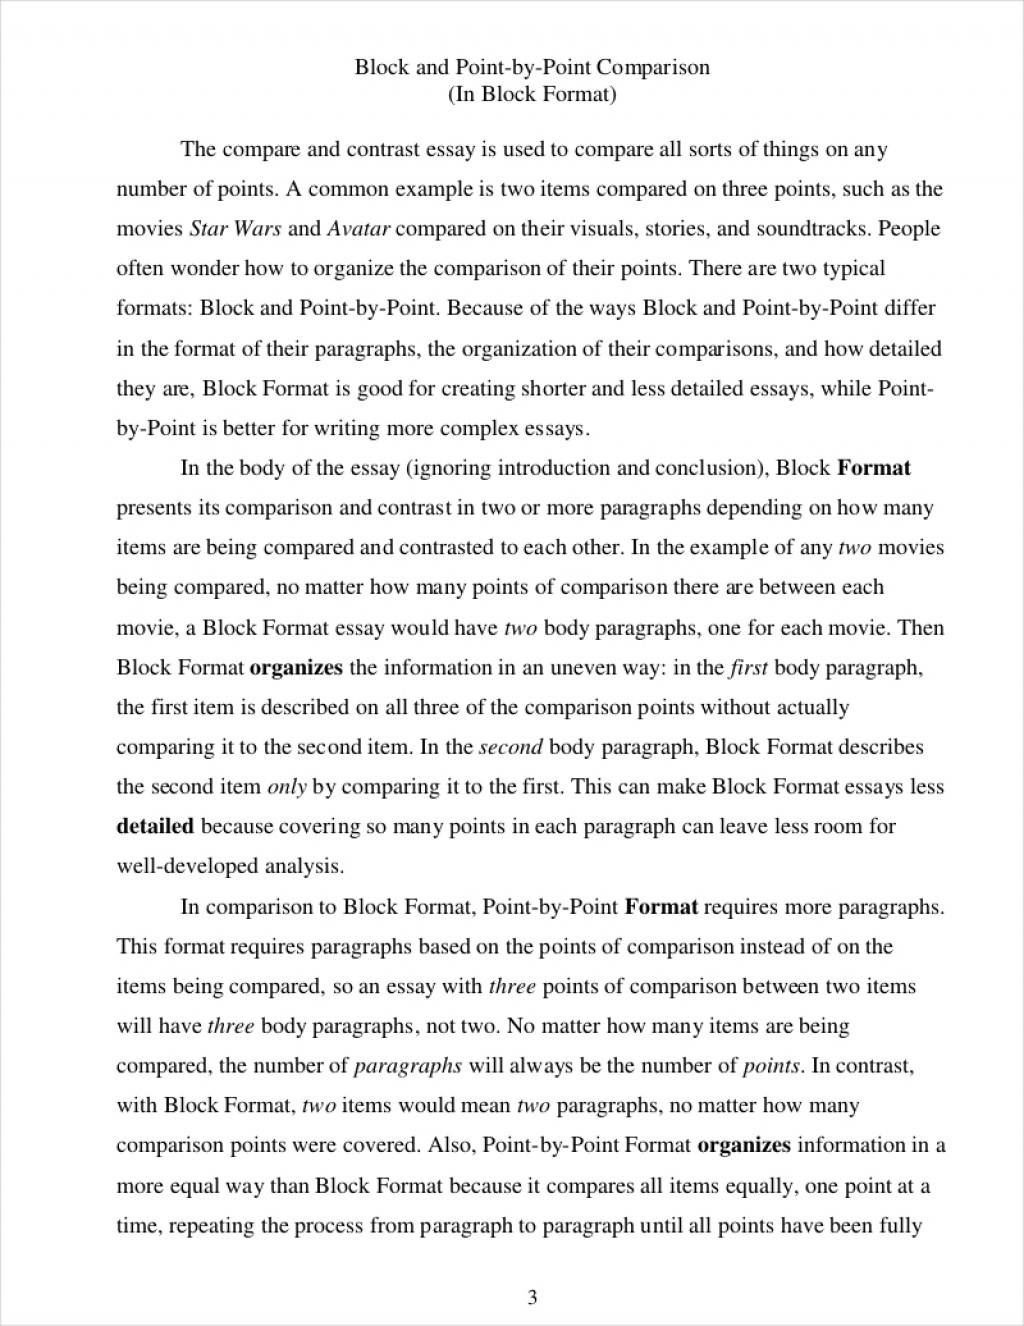 006 Essay Pdf Example Comparative Samples Free Format Download Point By Exa Sample Unbelievable Gujarati Argumentative Terrorism Large